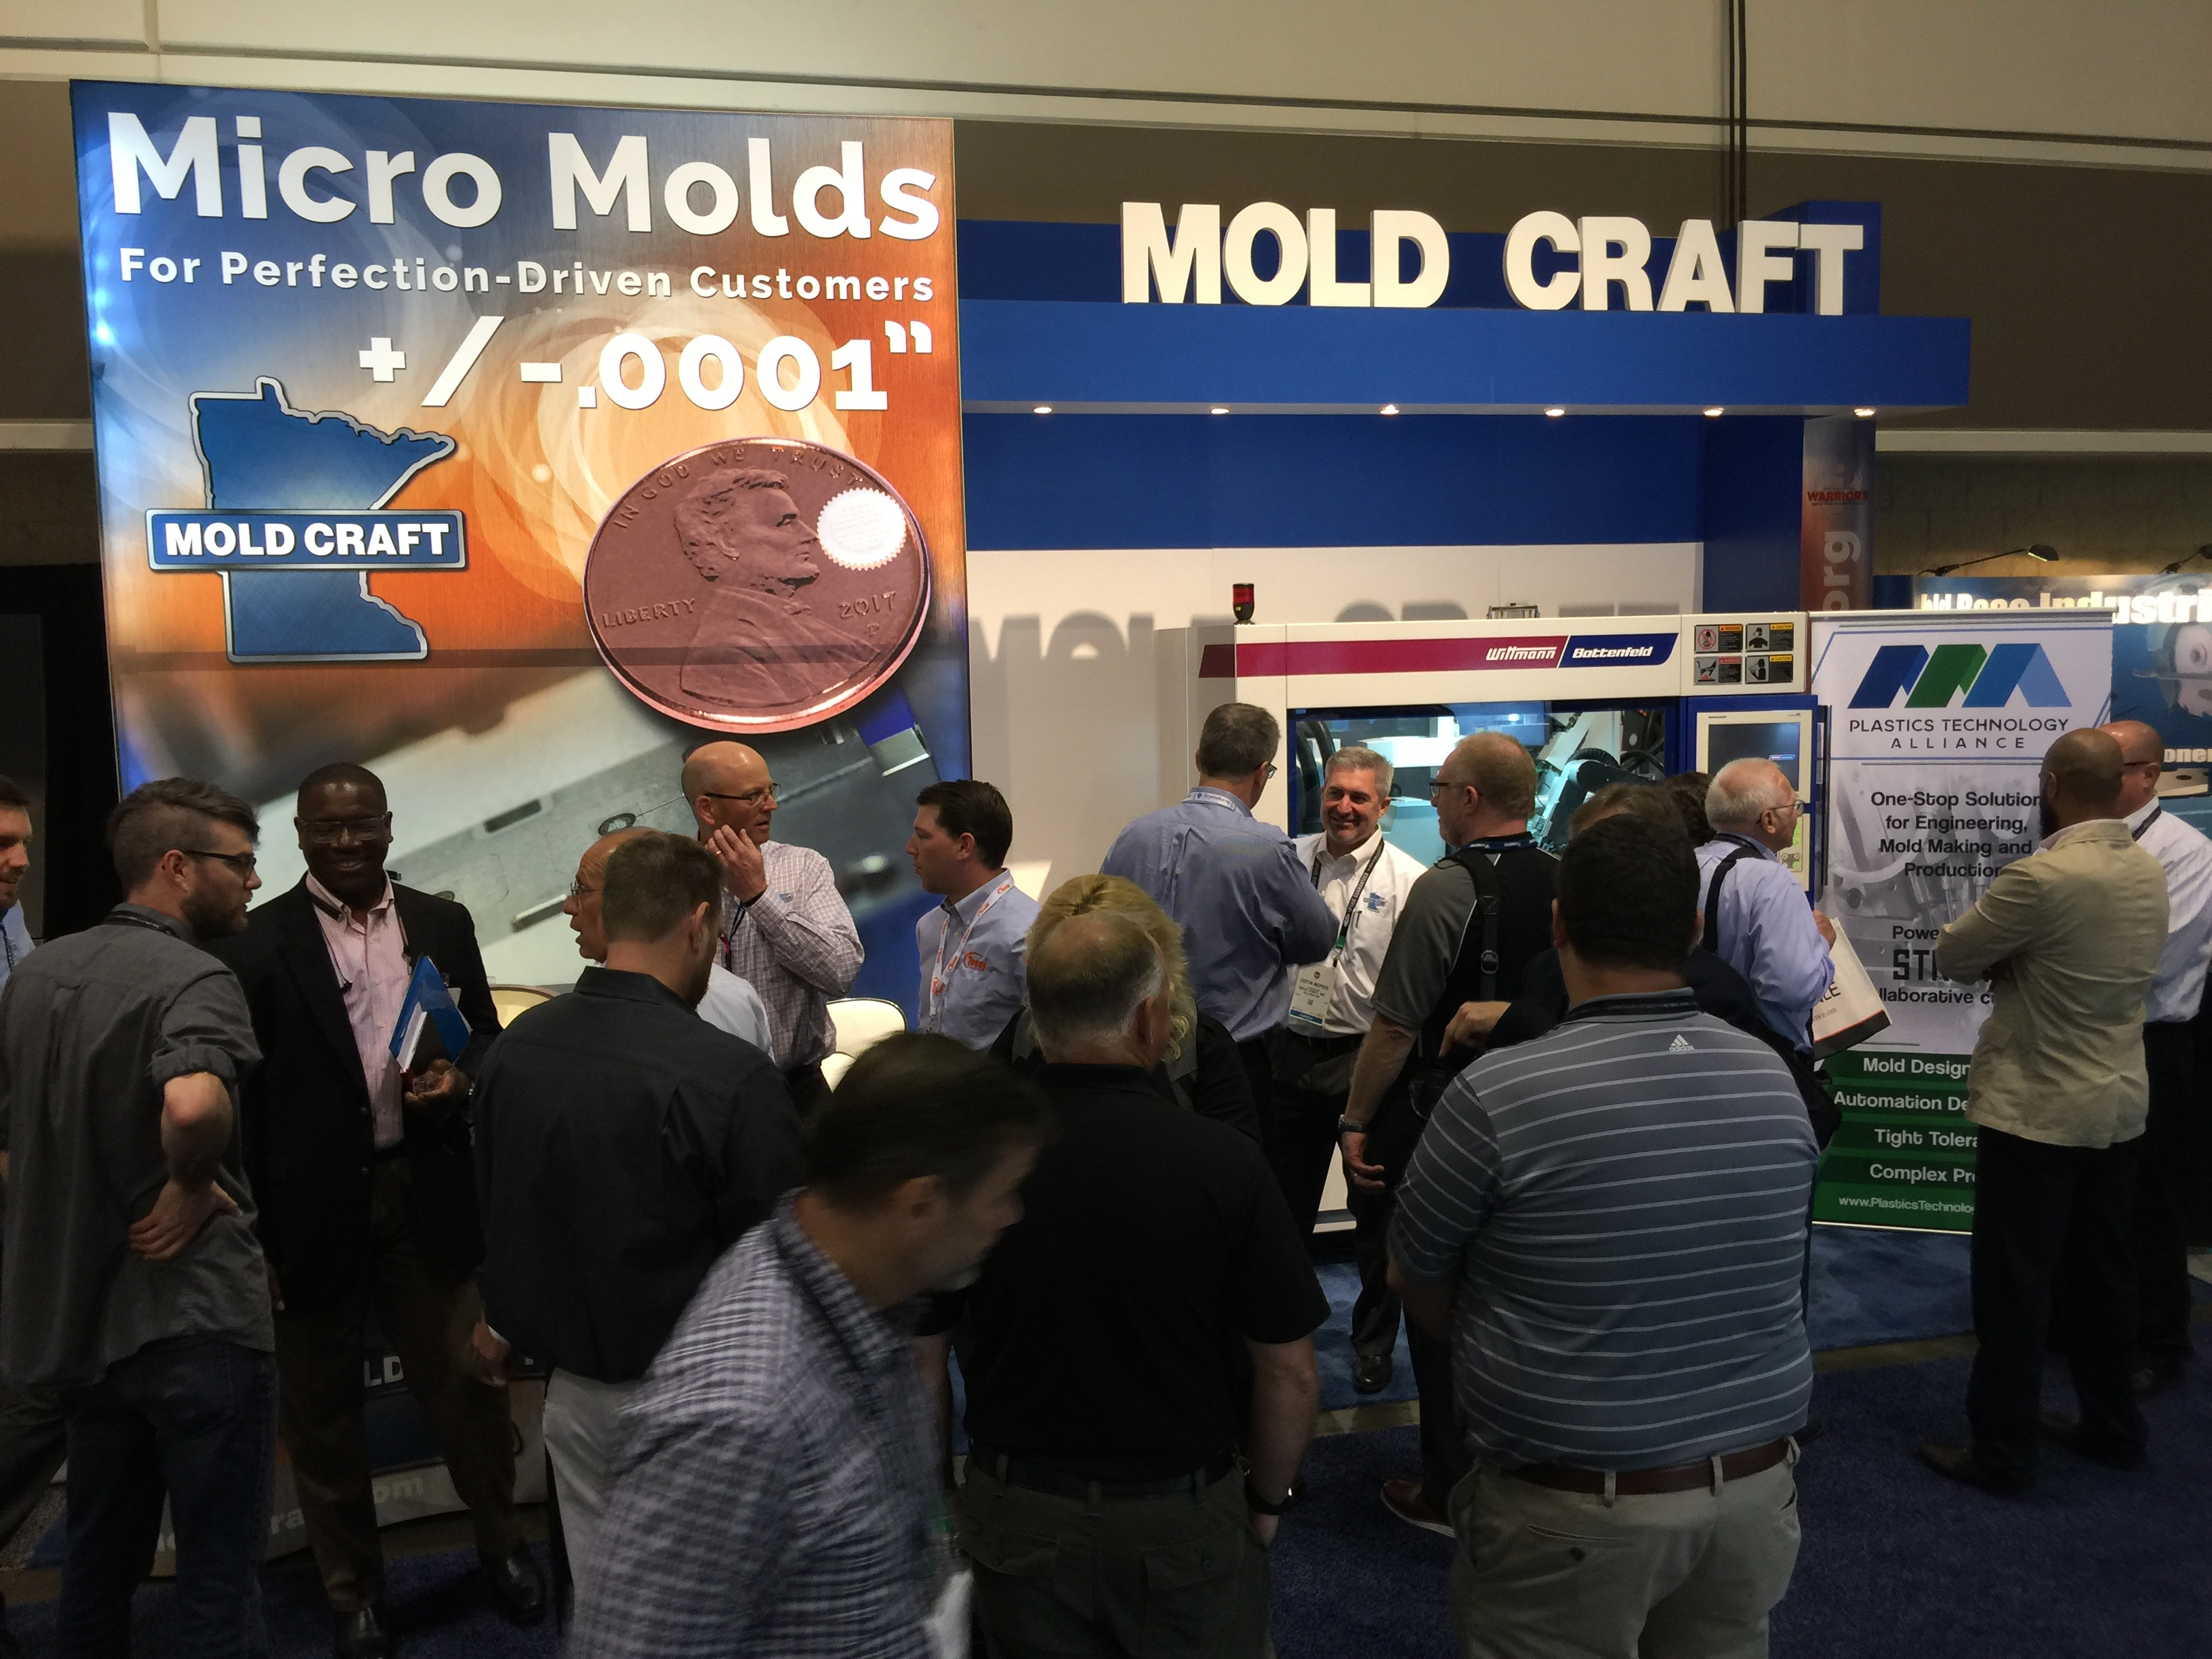 NPE 2018: Looking Back - Mold Craft